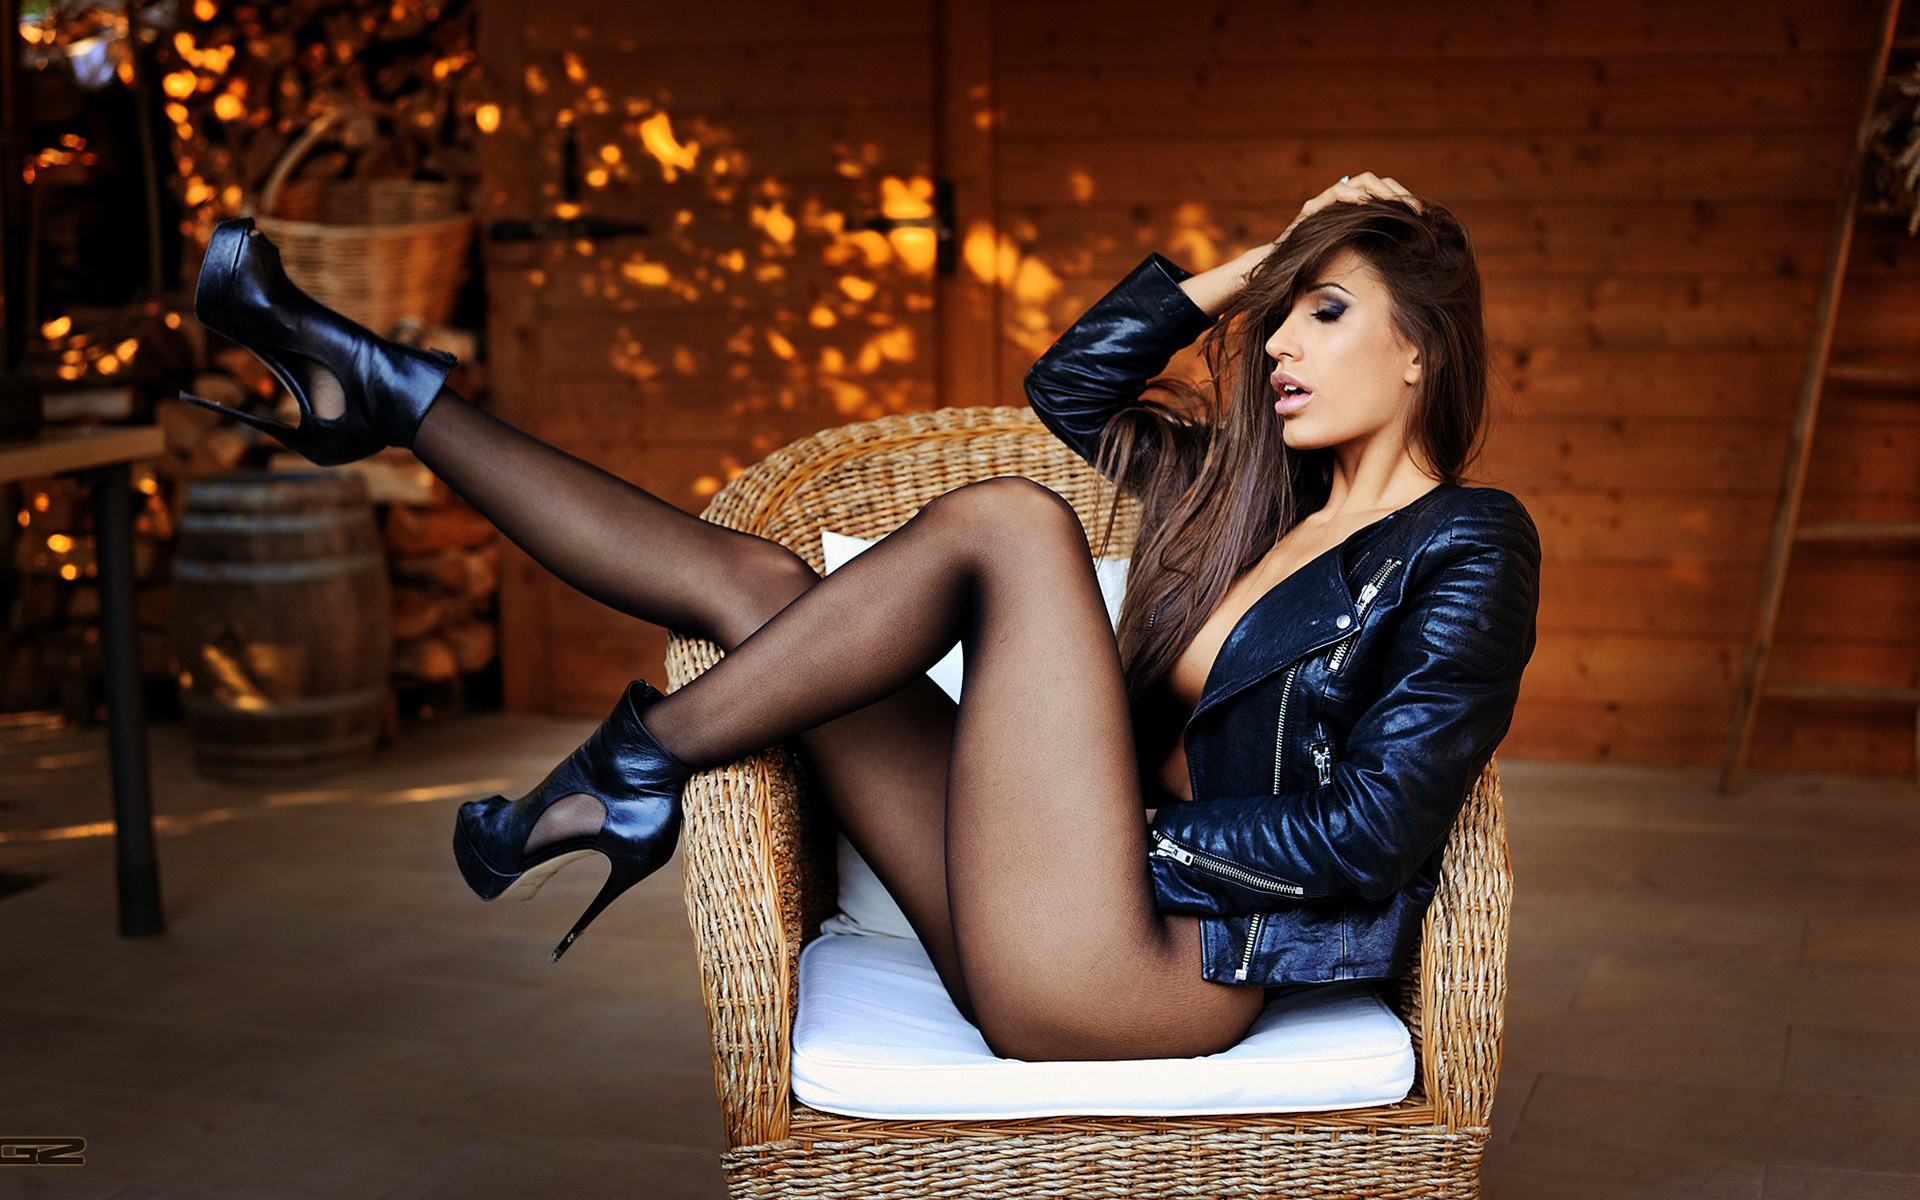 Girl with hot legs — pic 13